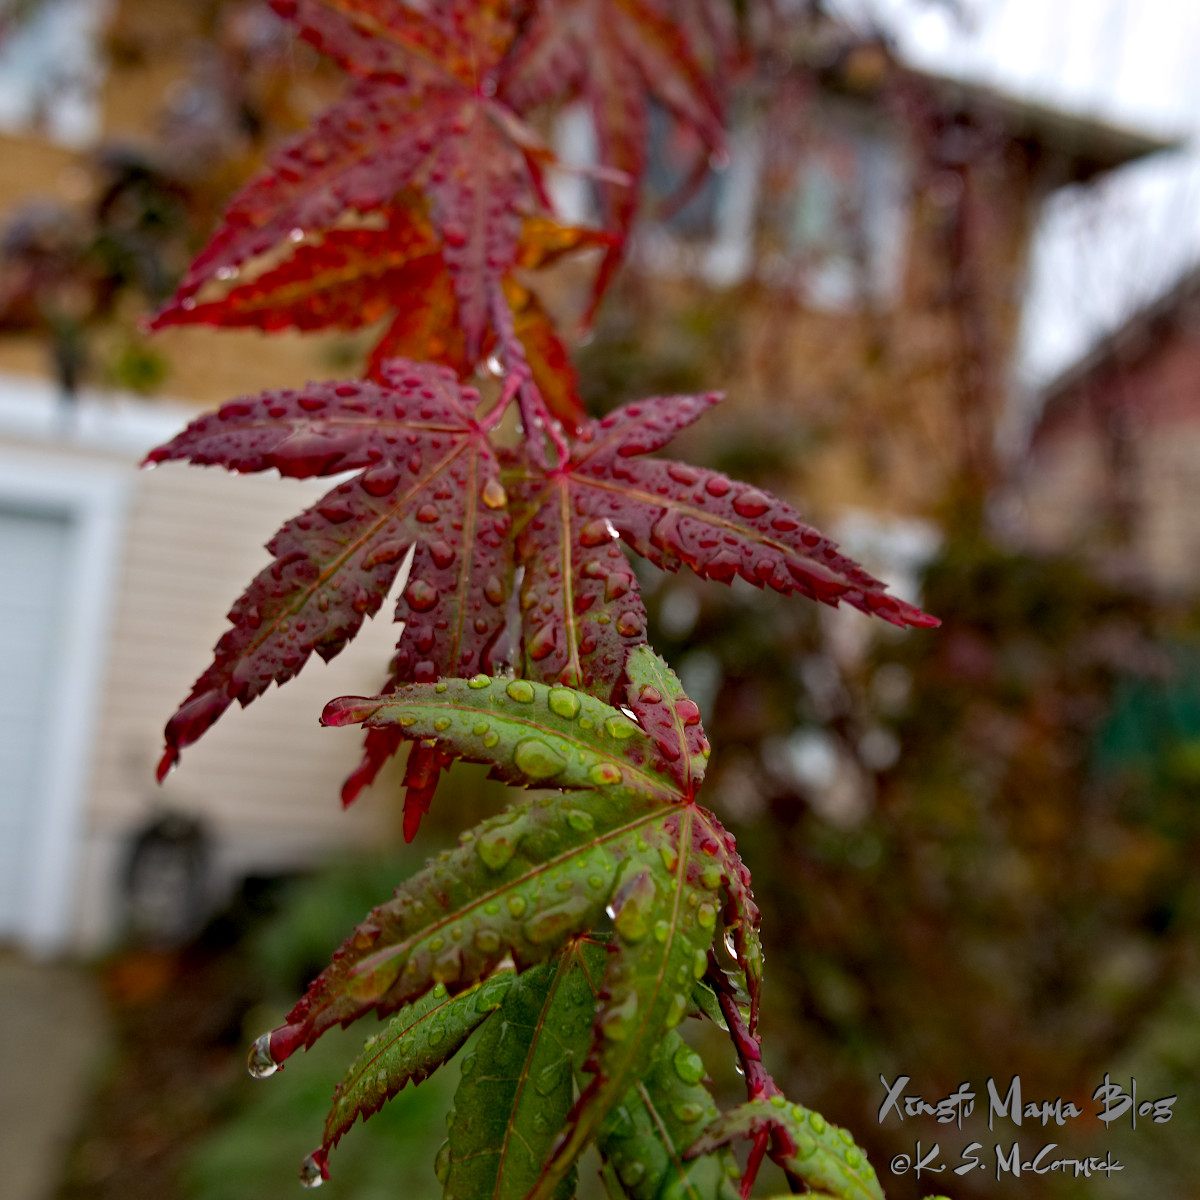 Japanese maple leaves coverd with raindrops.